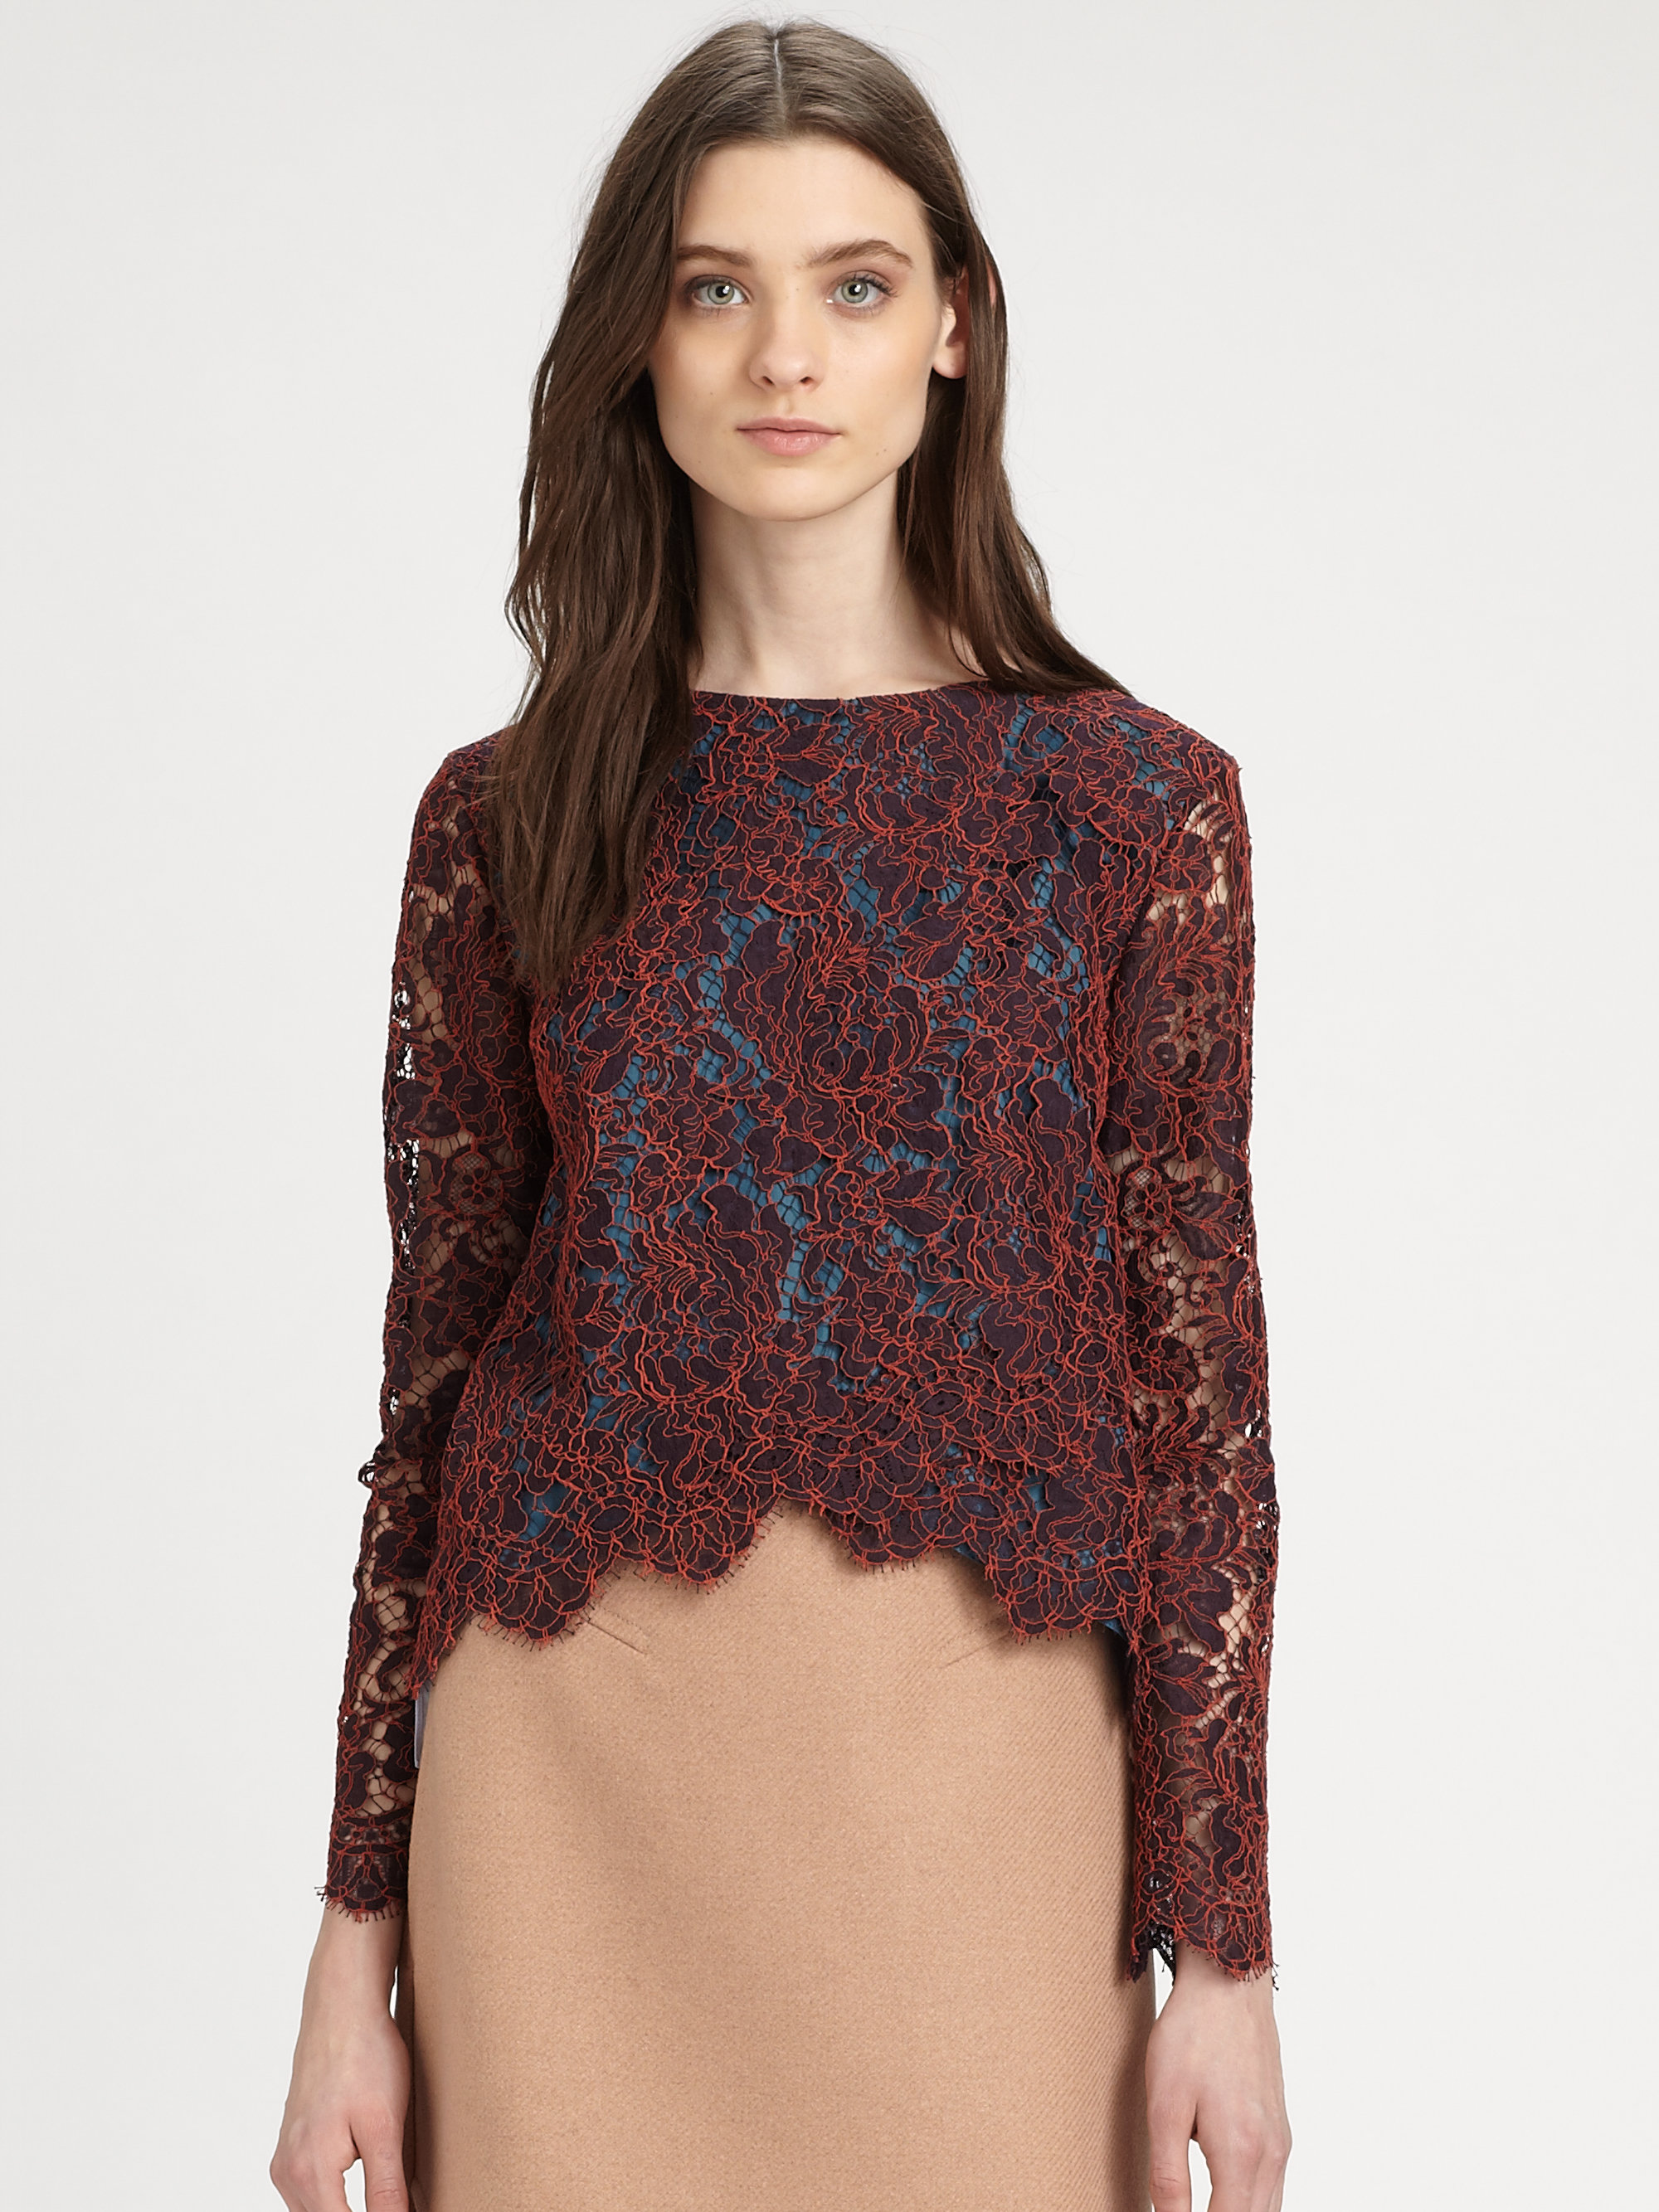 Buy BURGUNDY FLORAL LACE LONG SLEEVE BODYSUIT TOP,Find the newest womens casual top styles at specialtysports.ga fashion casual tops,cut out tops,hi lo tops,fashion knit tops,crop tops,tank tops,chiffon tops,sleeveless tops,print tops,button down shirt,one shoulders casual tops .